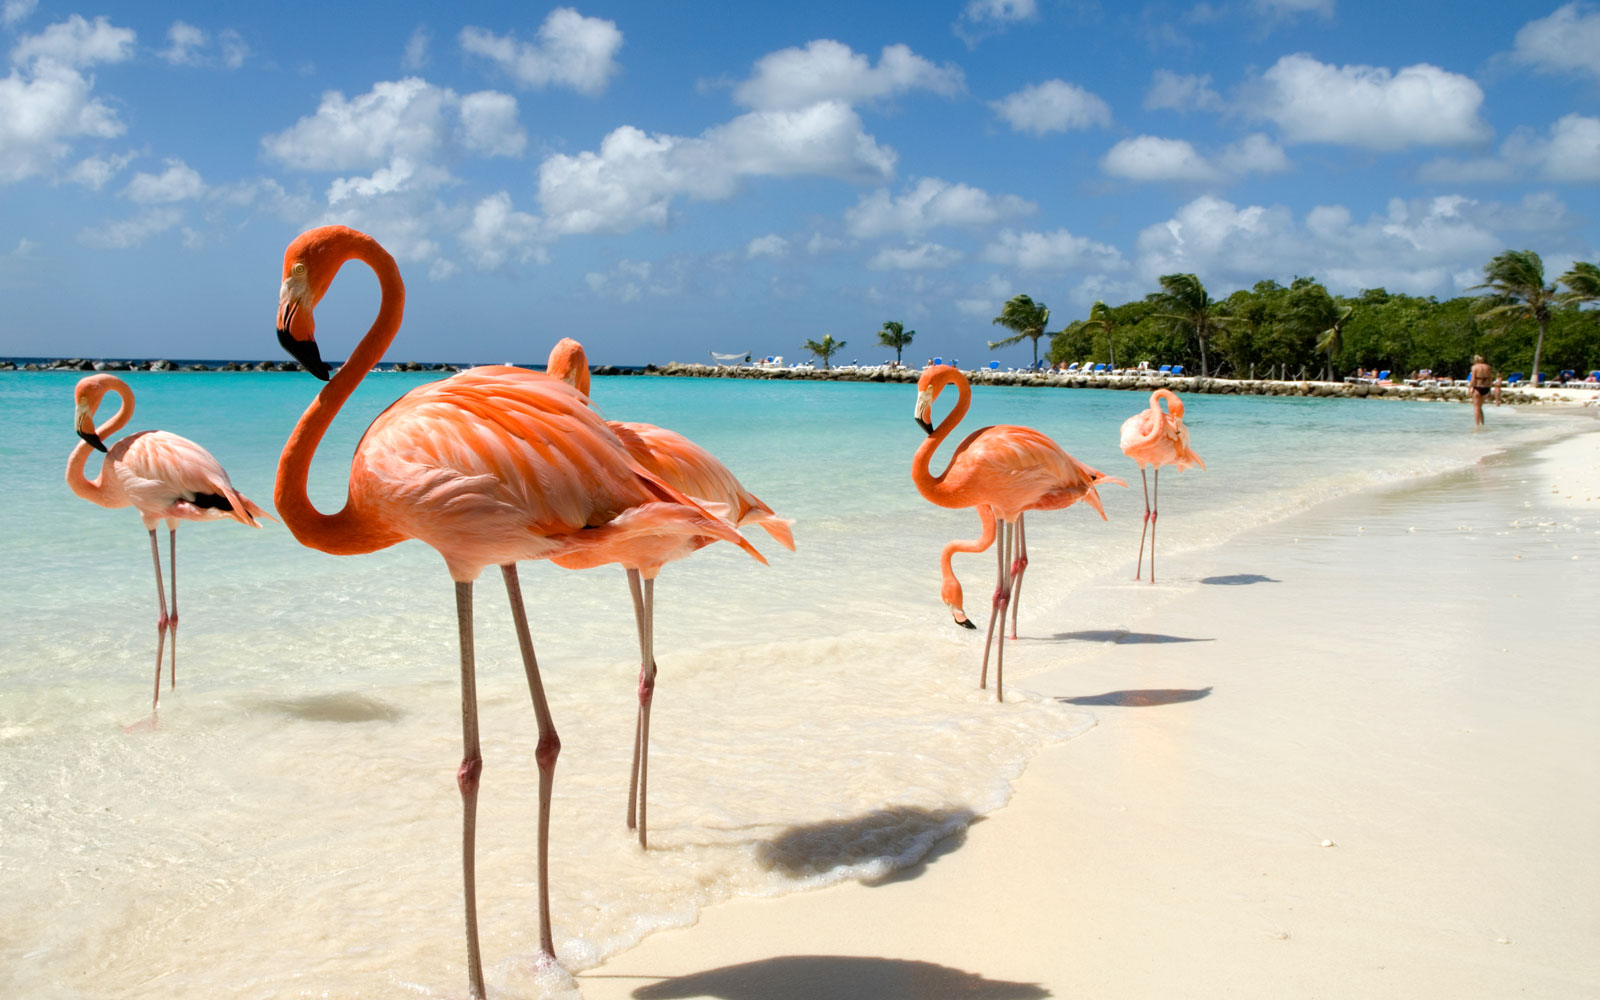 What It's Like to Swim With Flamingos in Aruba